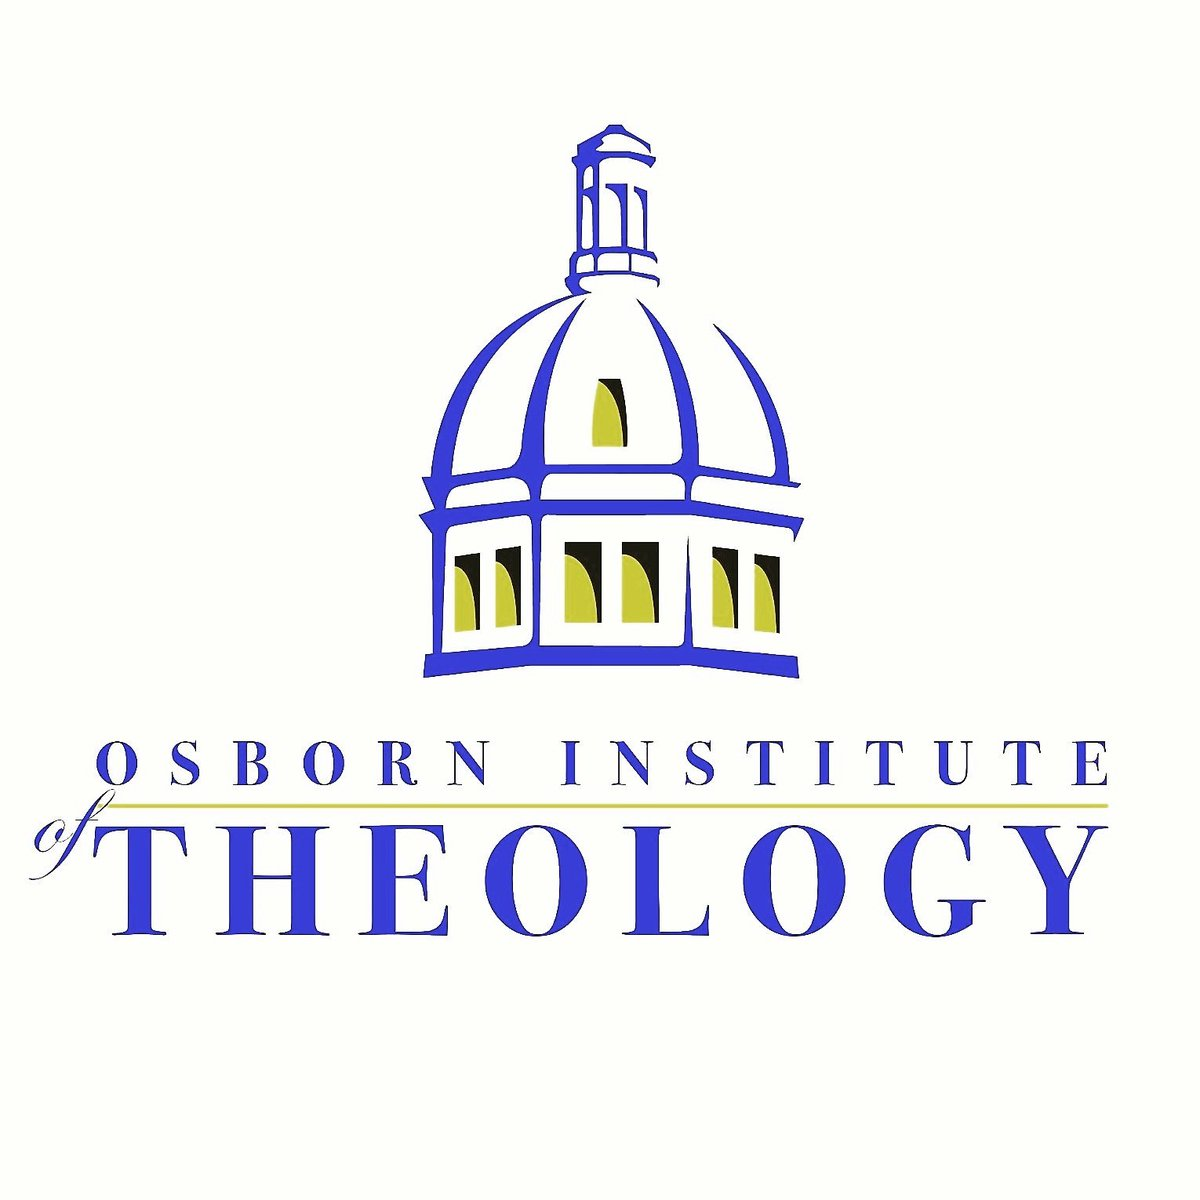 Oit osborninstitute twitter register now at httposbourninstitute and get a discount on the first module for certificate level uebertangel beverlyuangelpicitter 1betcityfo Choice Image